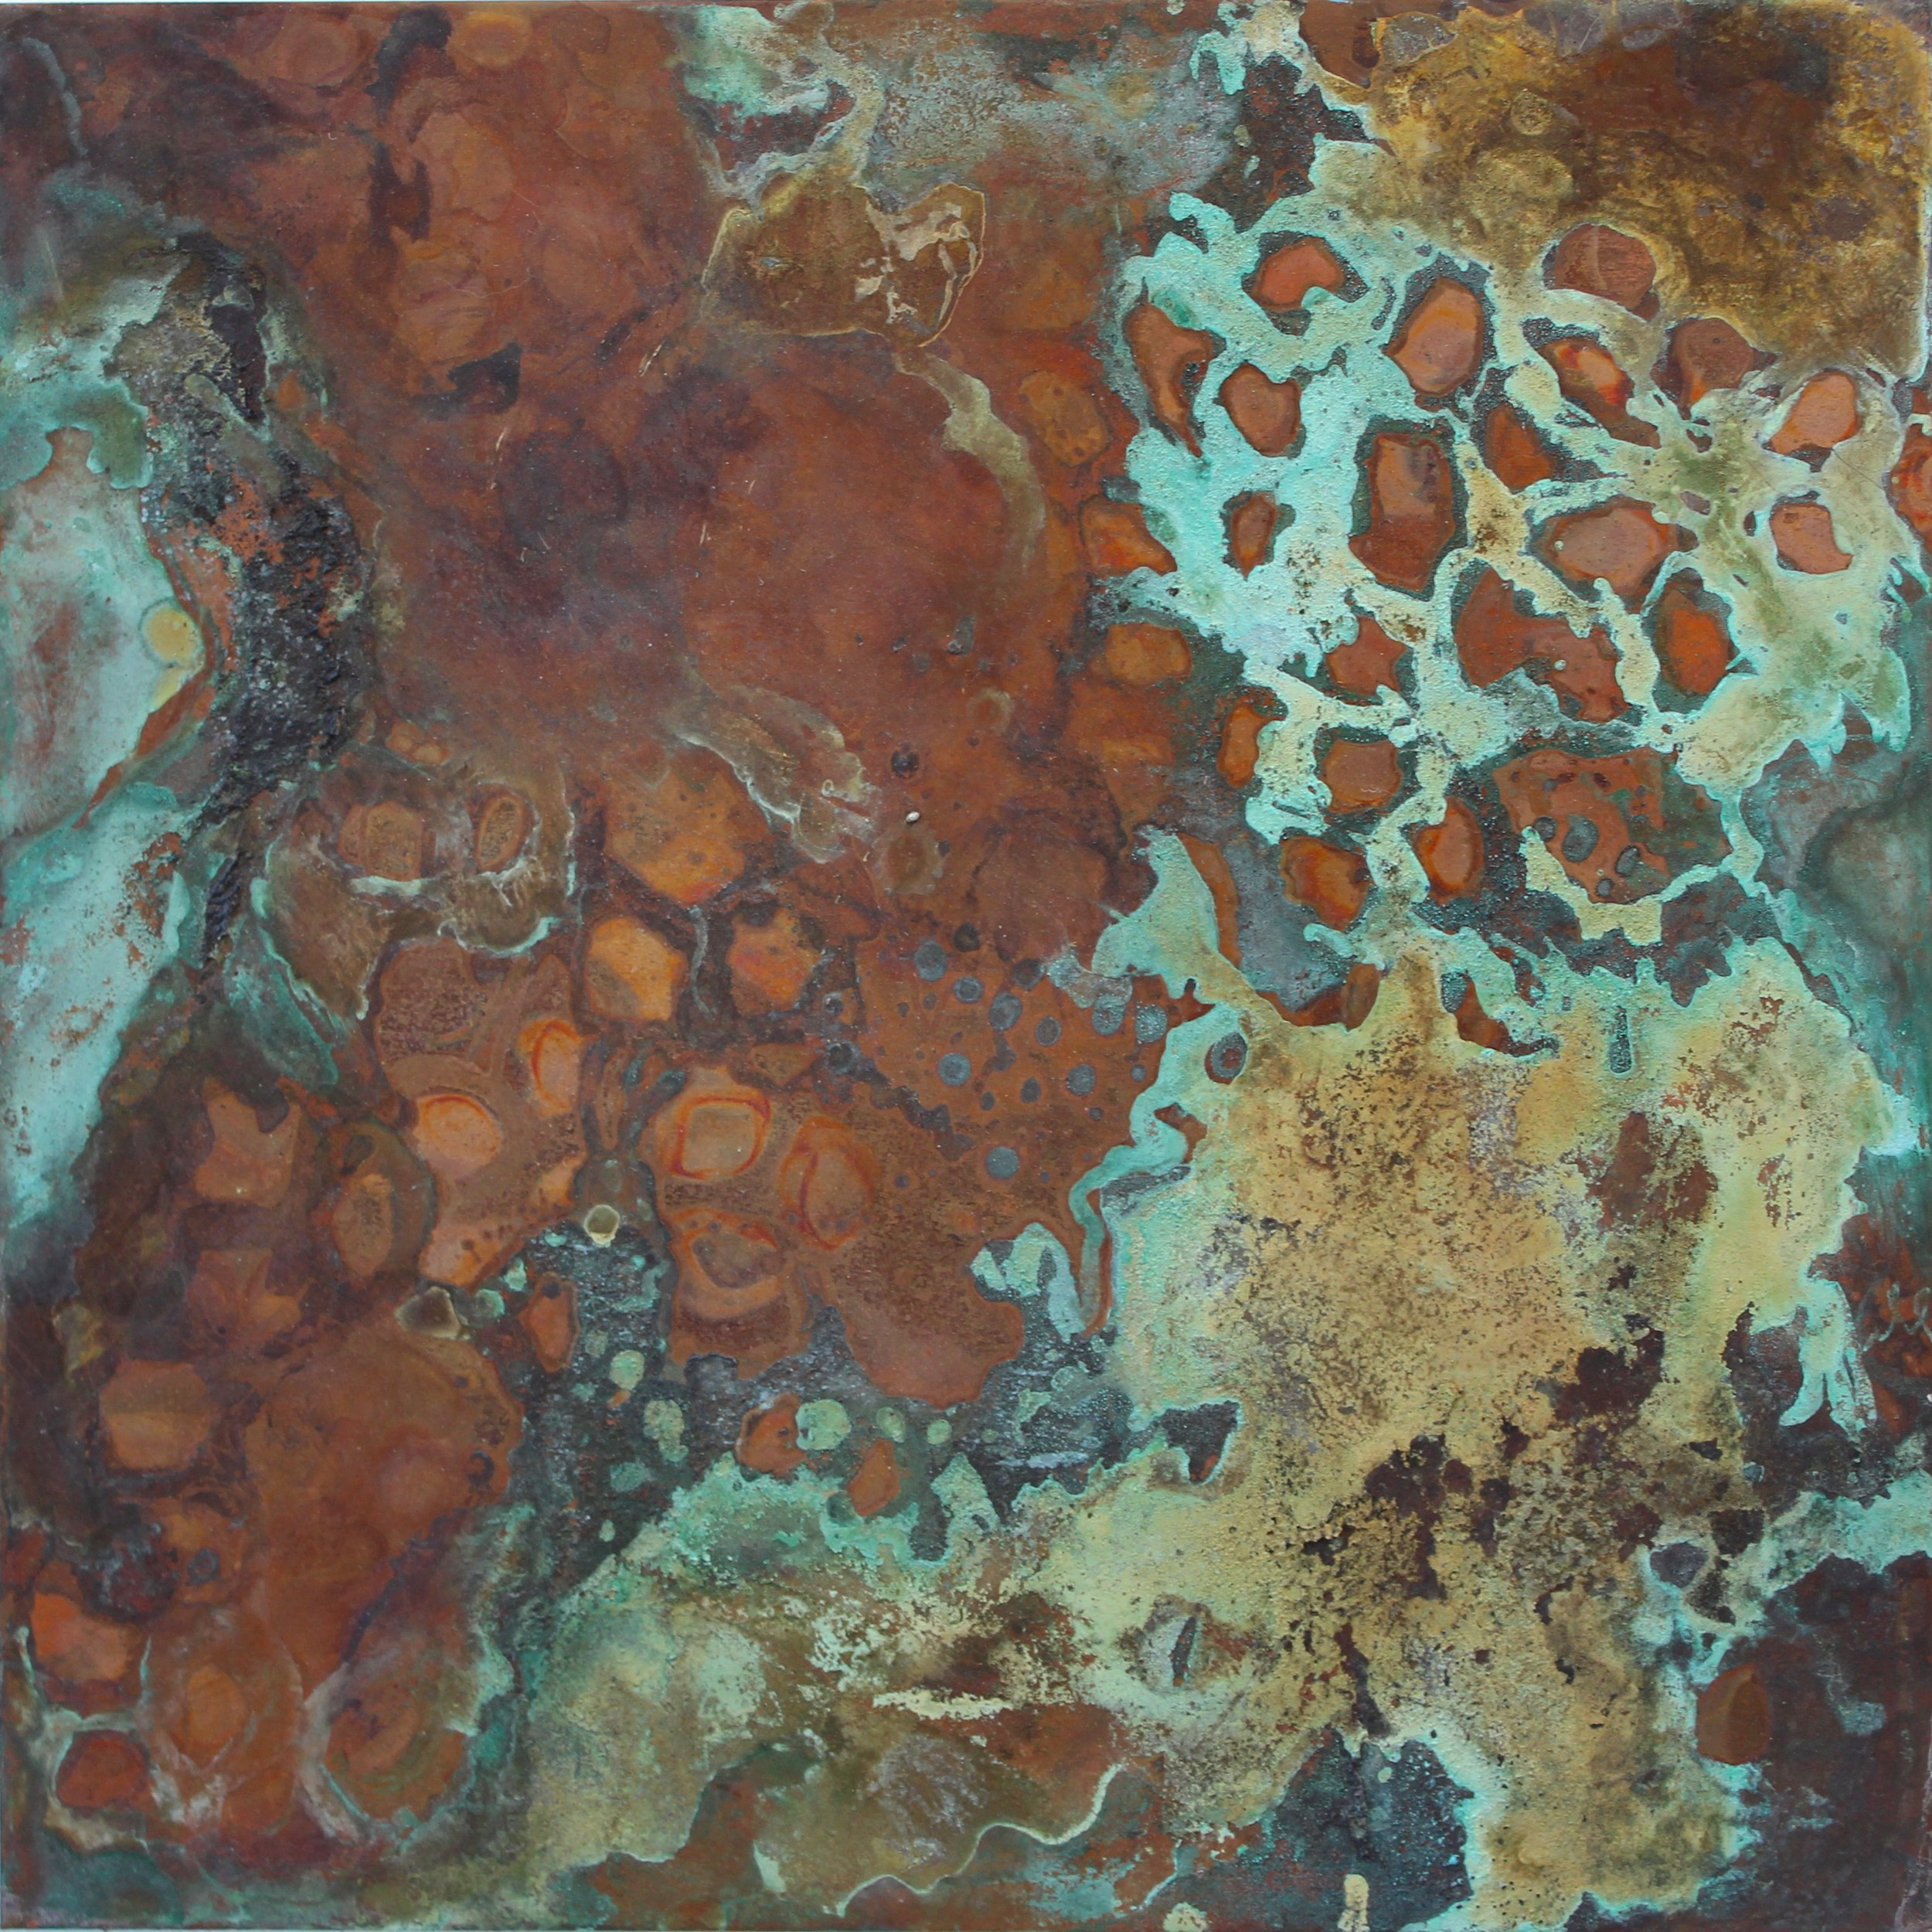 Abstract1-acid on copper plate.jpg